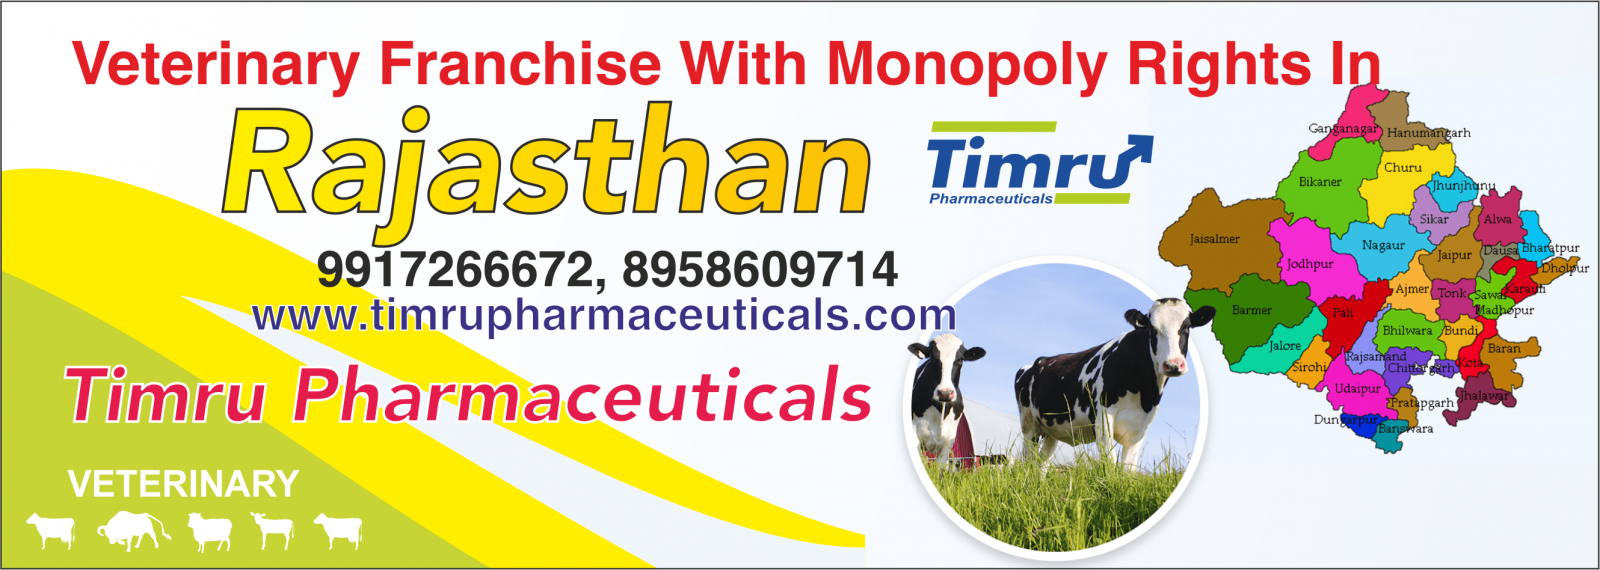 Veterinary-Franchise-in-Rajasthan-Timru-Pharmaceuticals